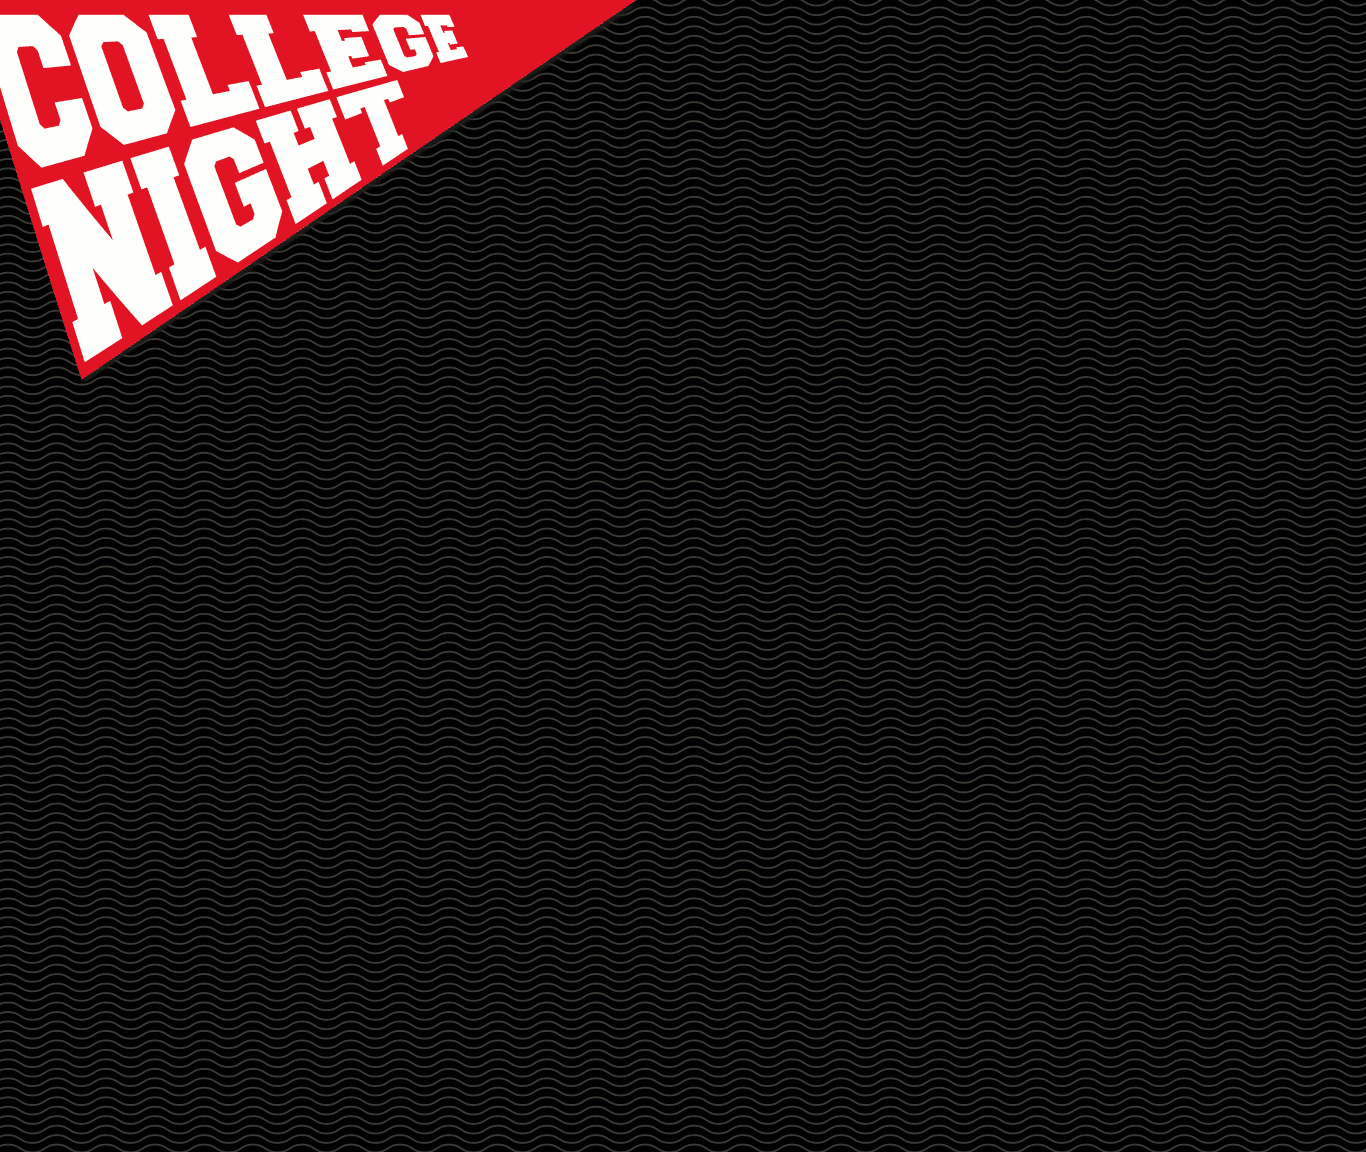 College Night cover Graphic